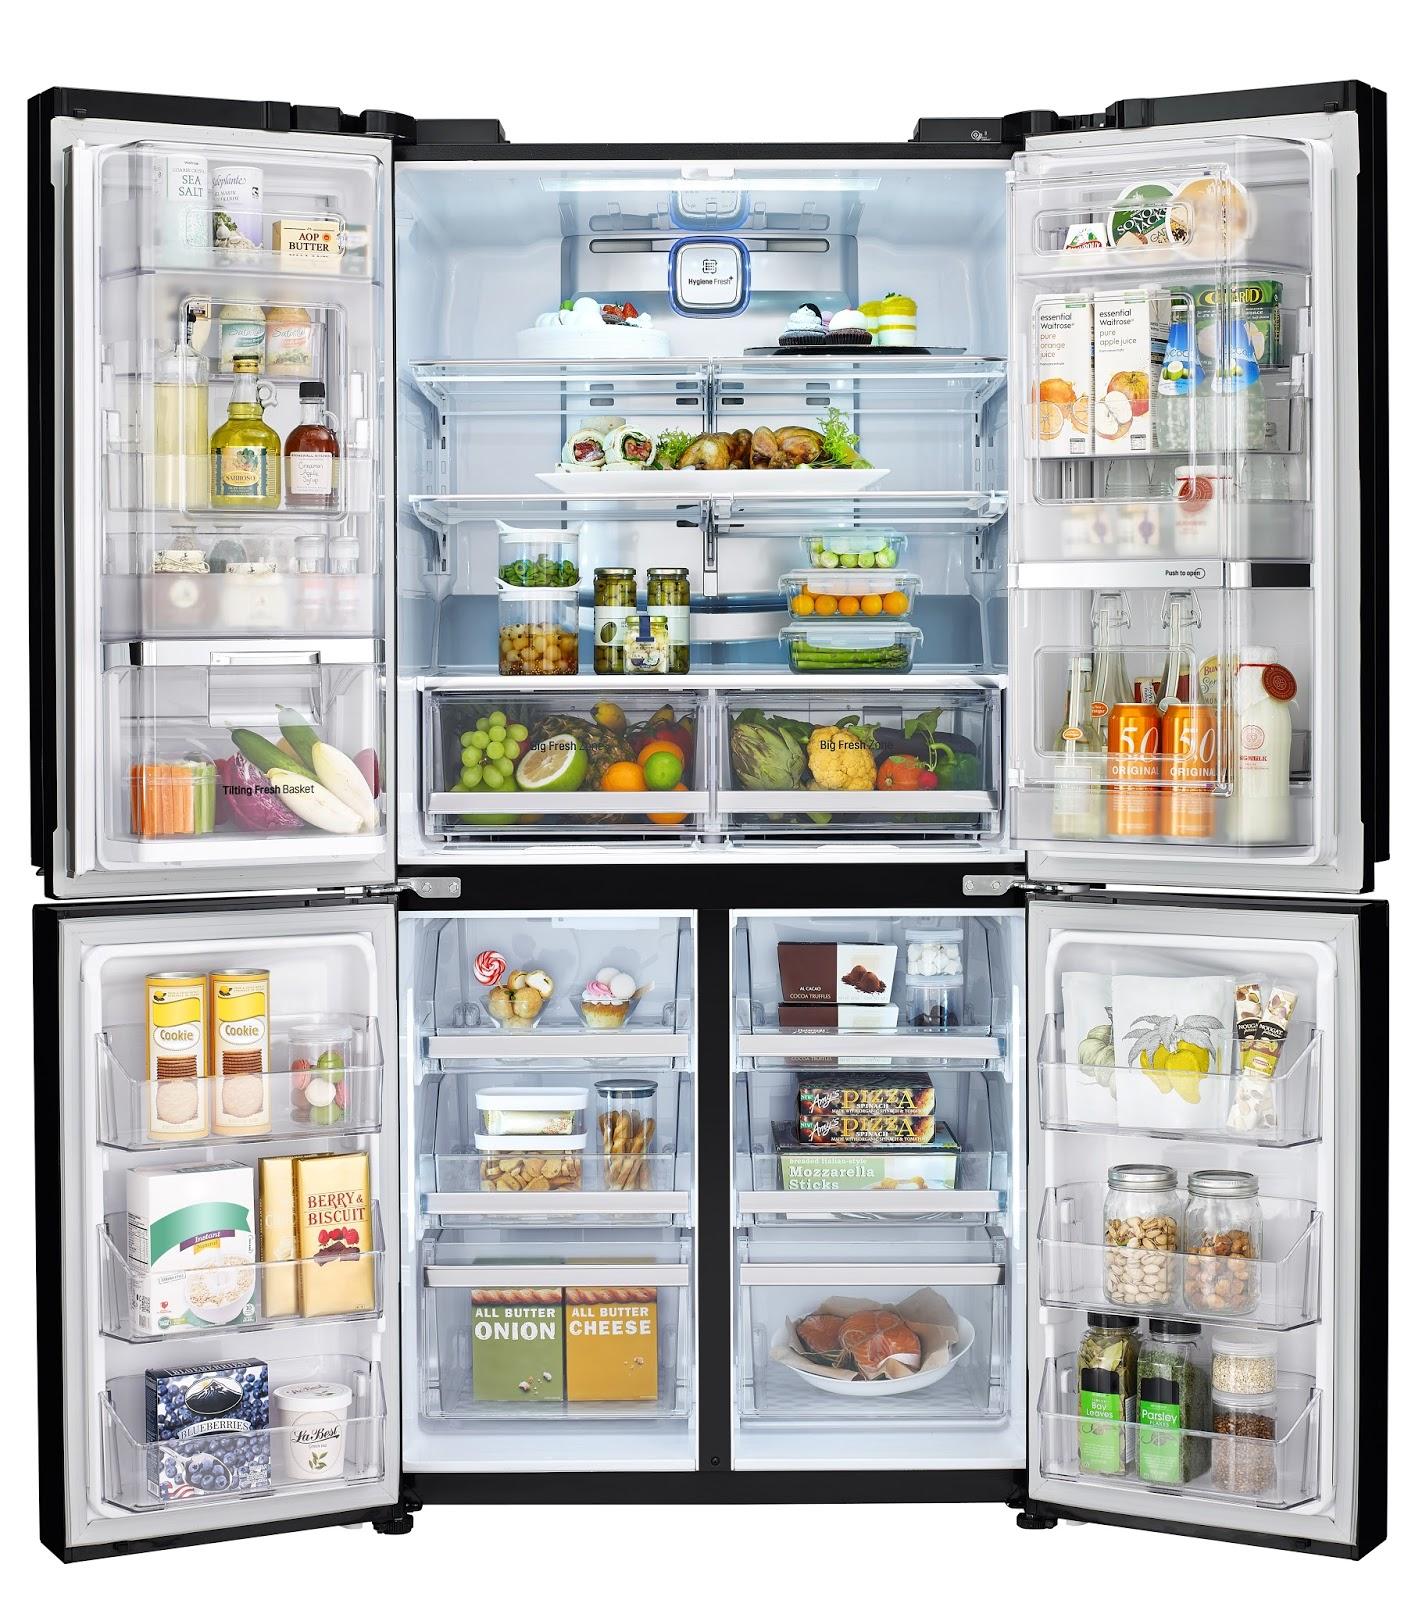 Introducing Lg Side By Side Refrigerator Indias Largest Capacity